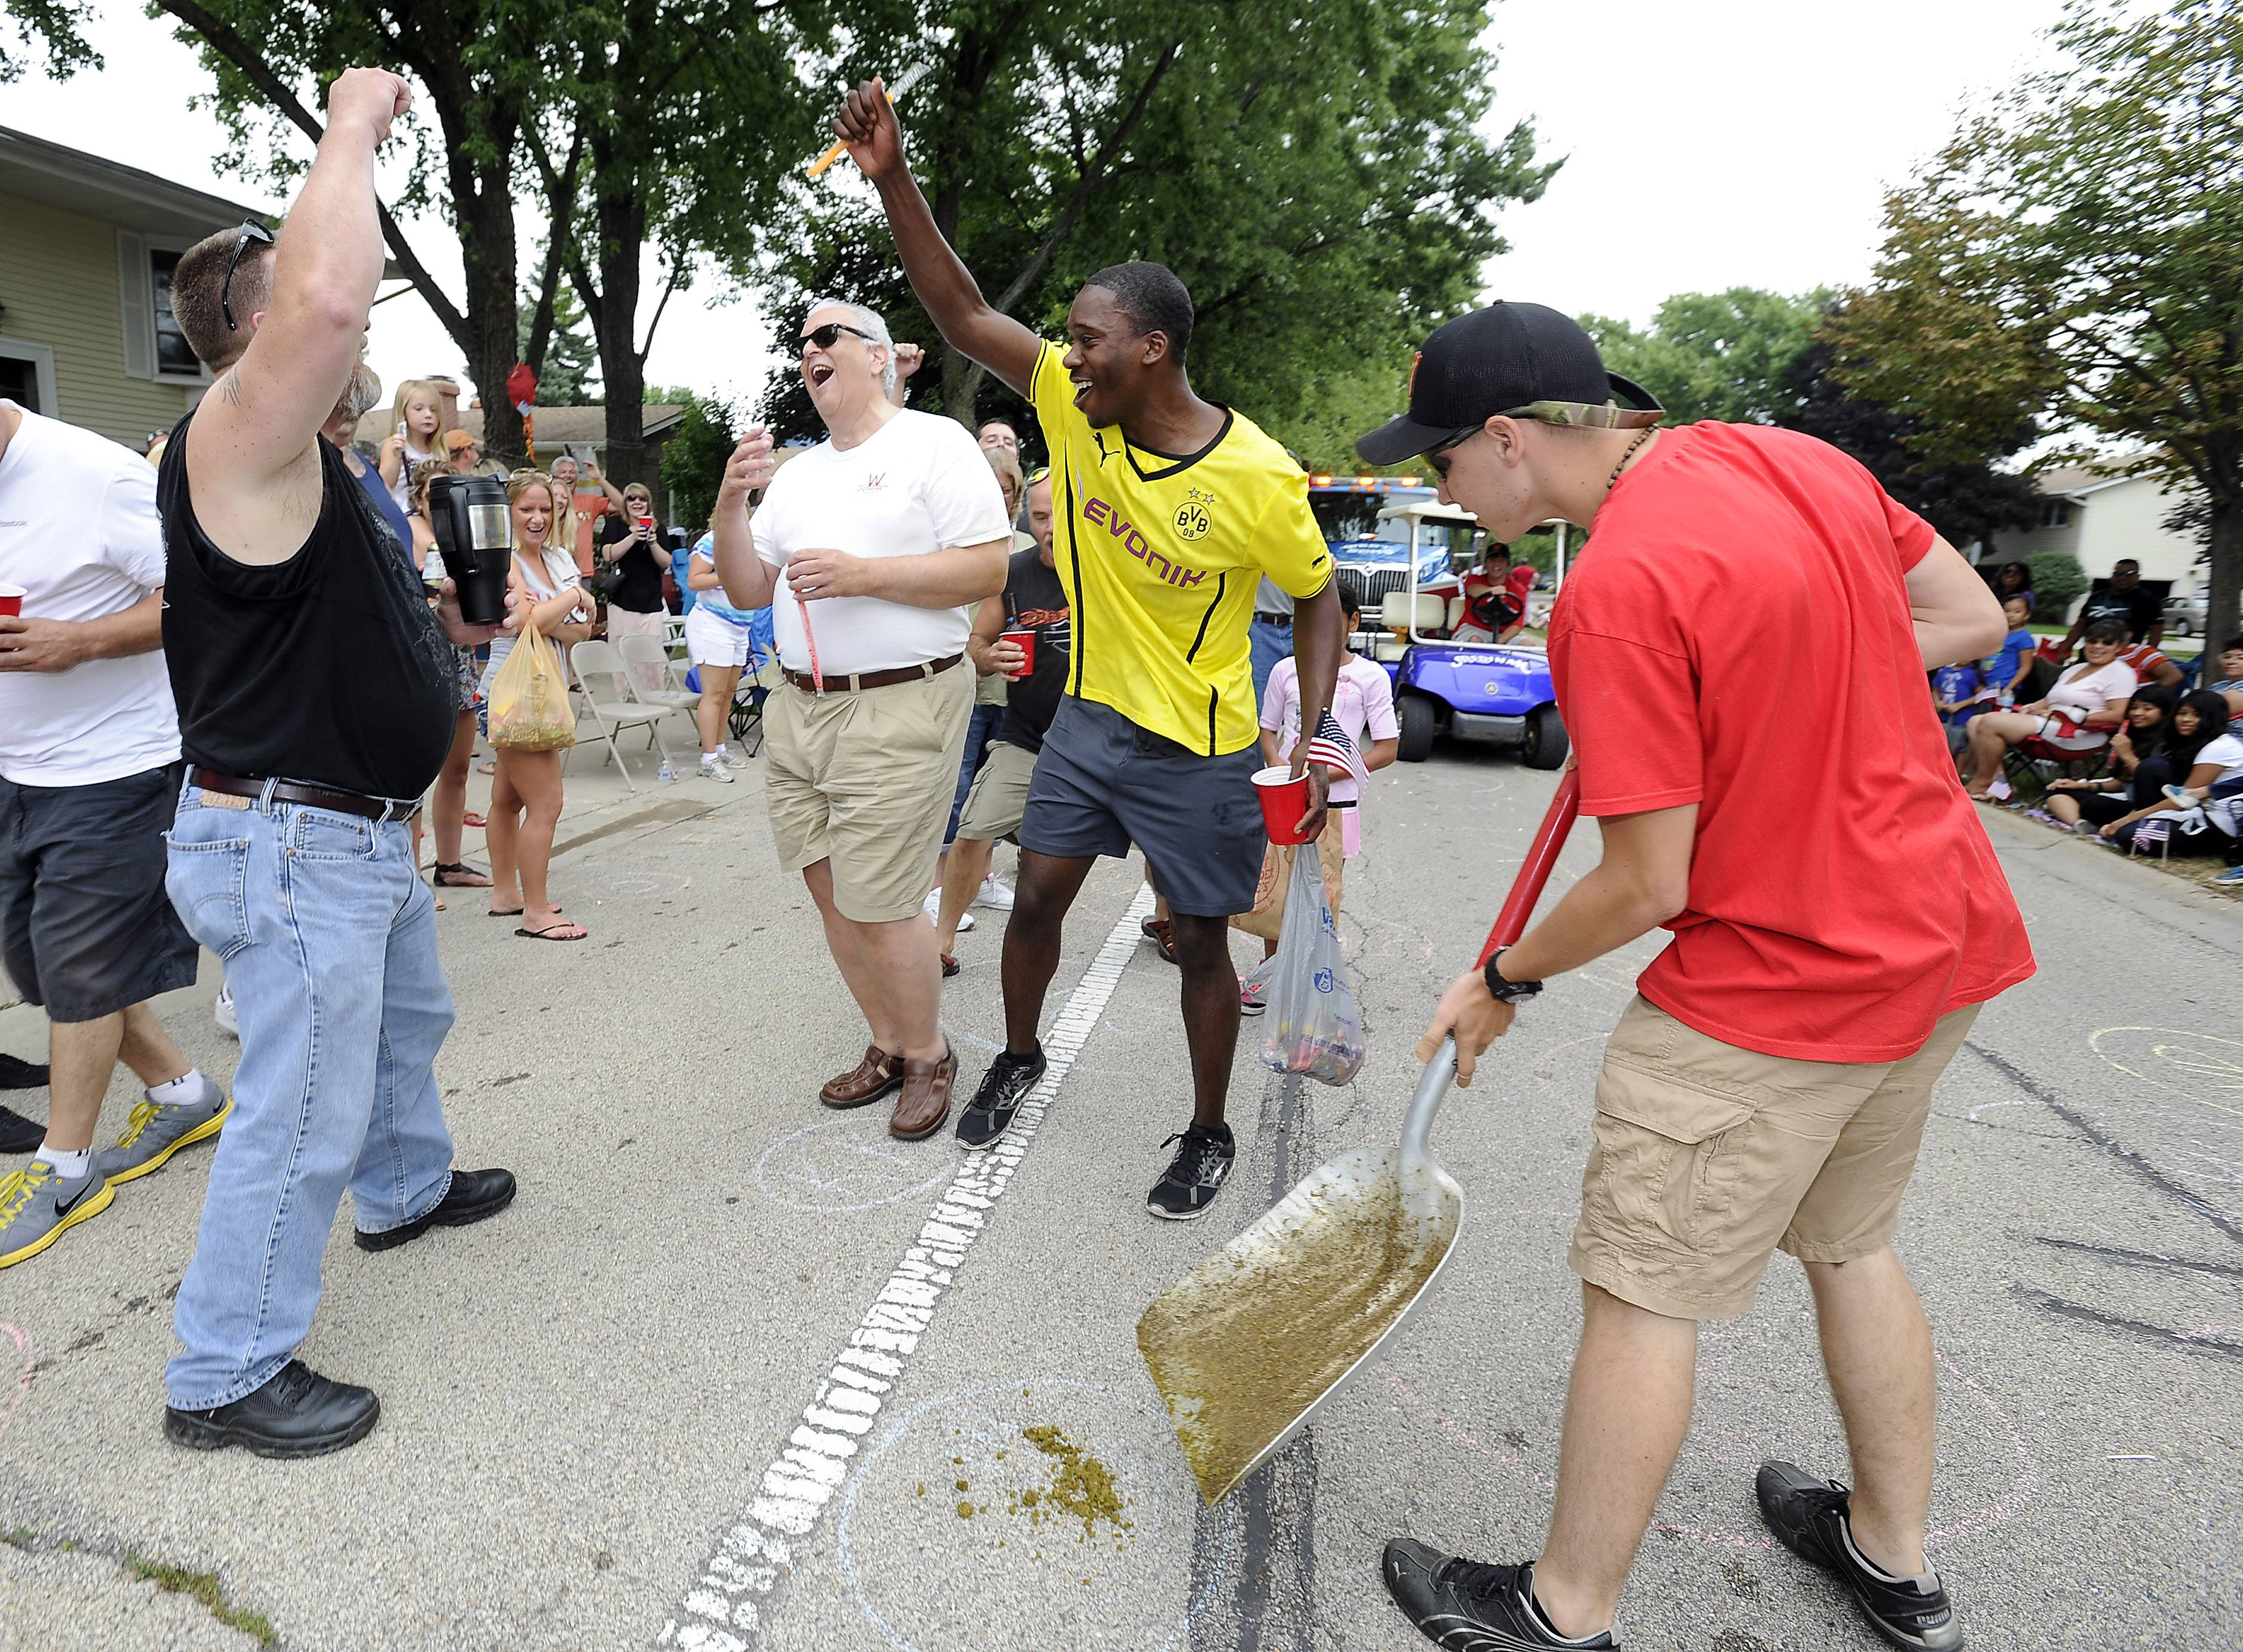 Austin Steerly of Sandwich dumps a little horse manure in the circle on the street belonging to Trez Norwood of Streamwood, center, who as a result won $73 in a friendly competition at a party held in conjunction with the parade.